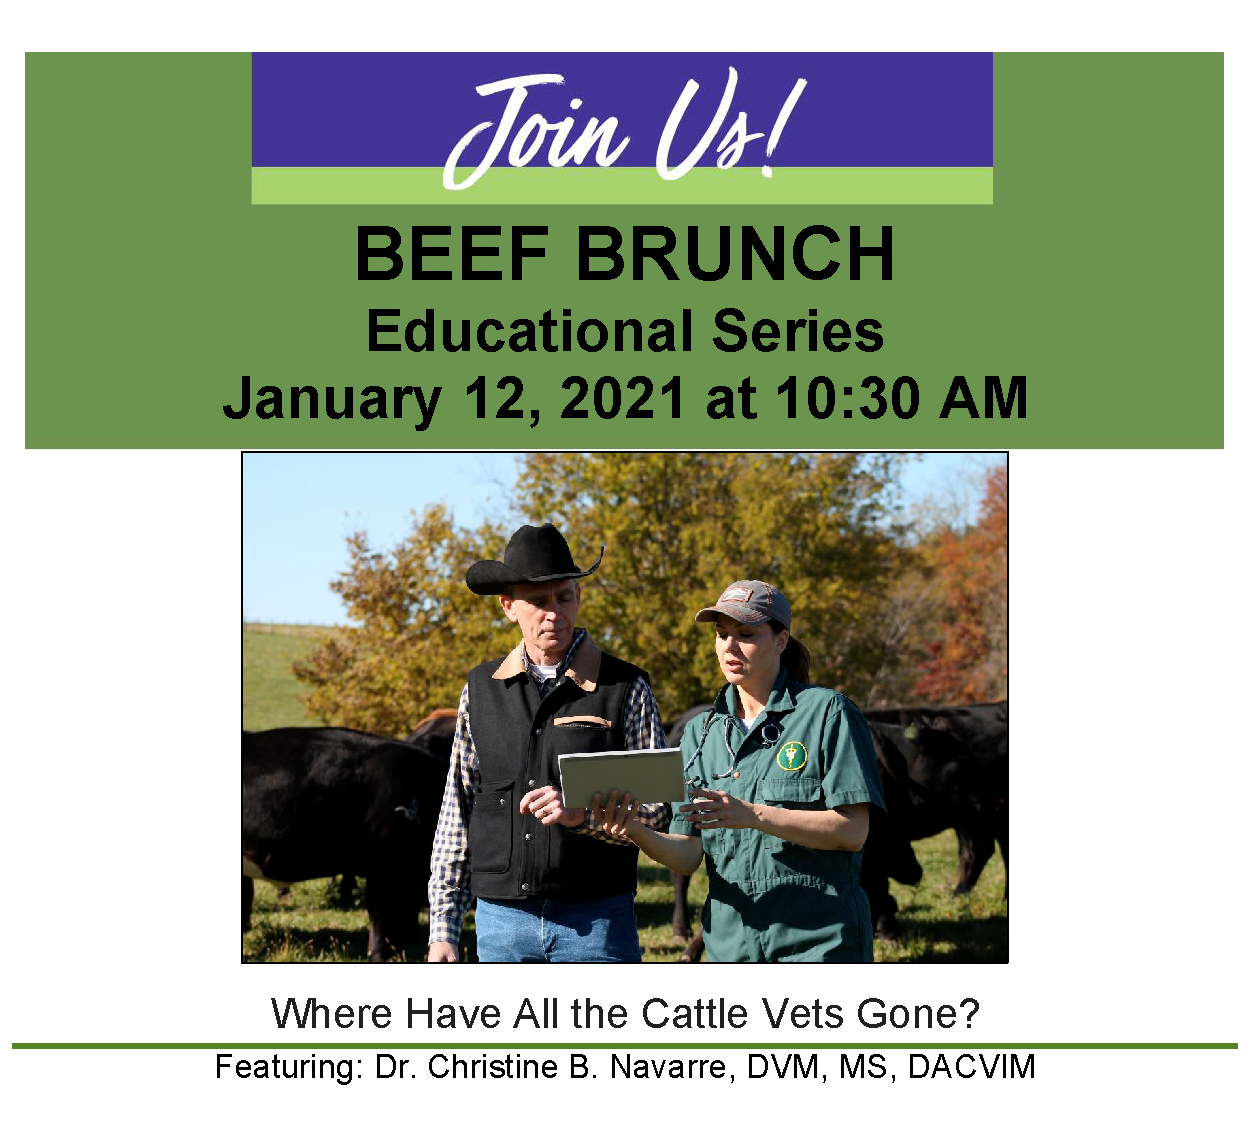 Beef Brunch Flyer - Where have all the cattle vets gone - January 2021 - Website Imagepng